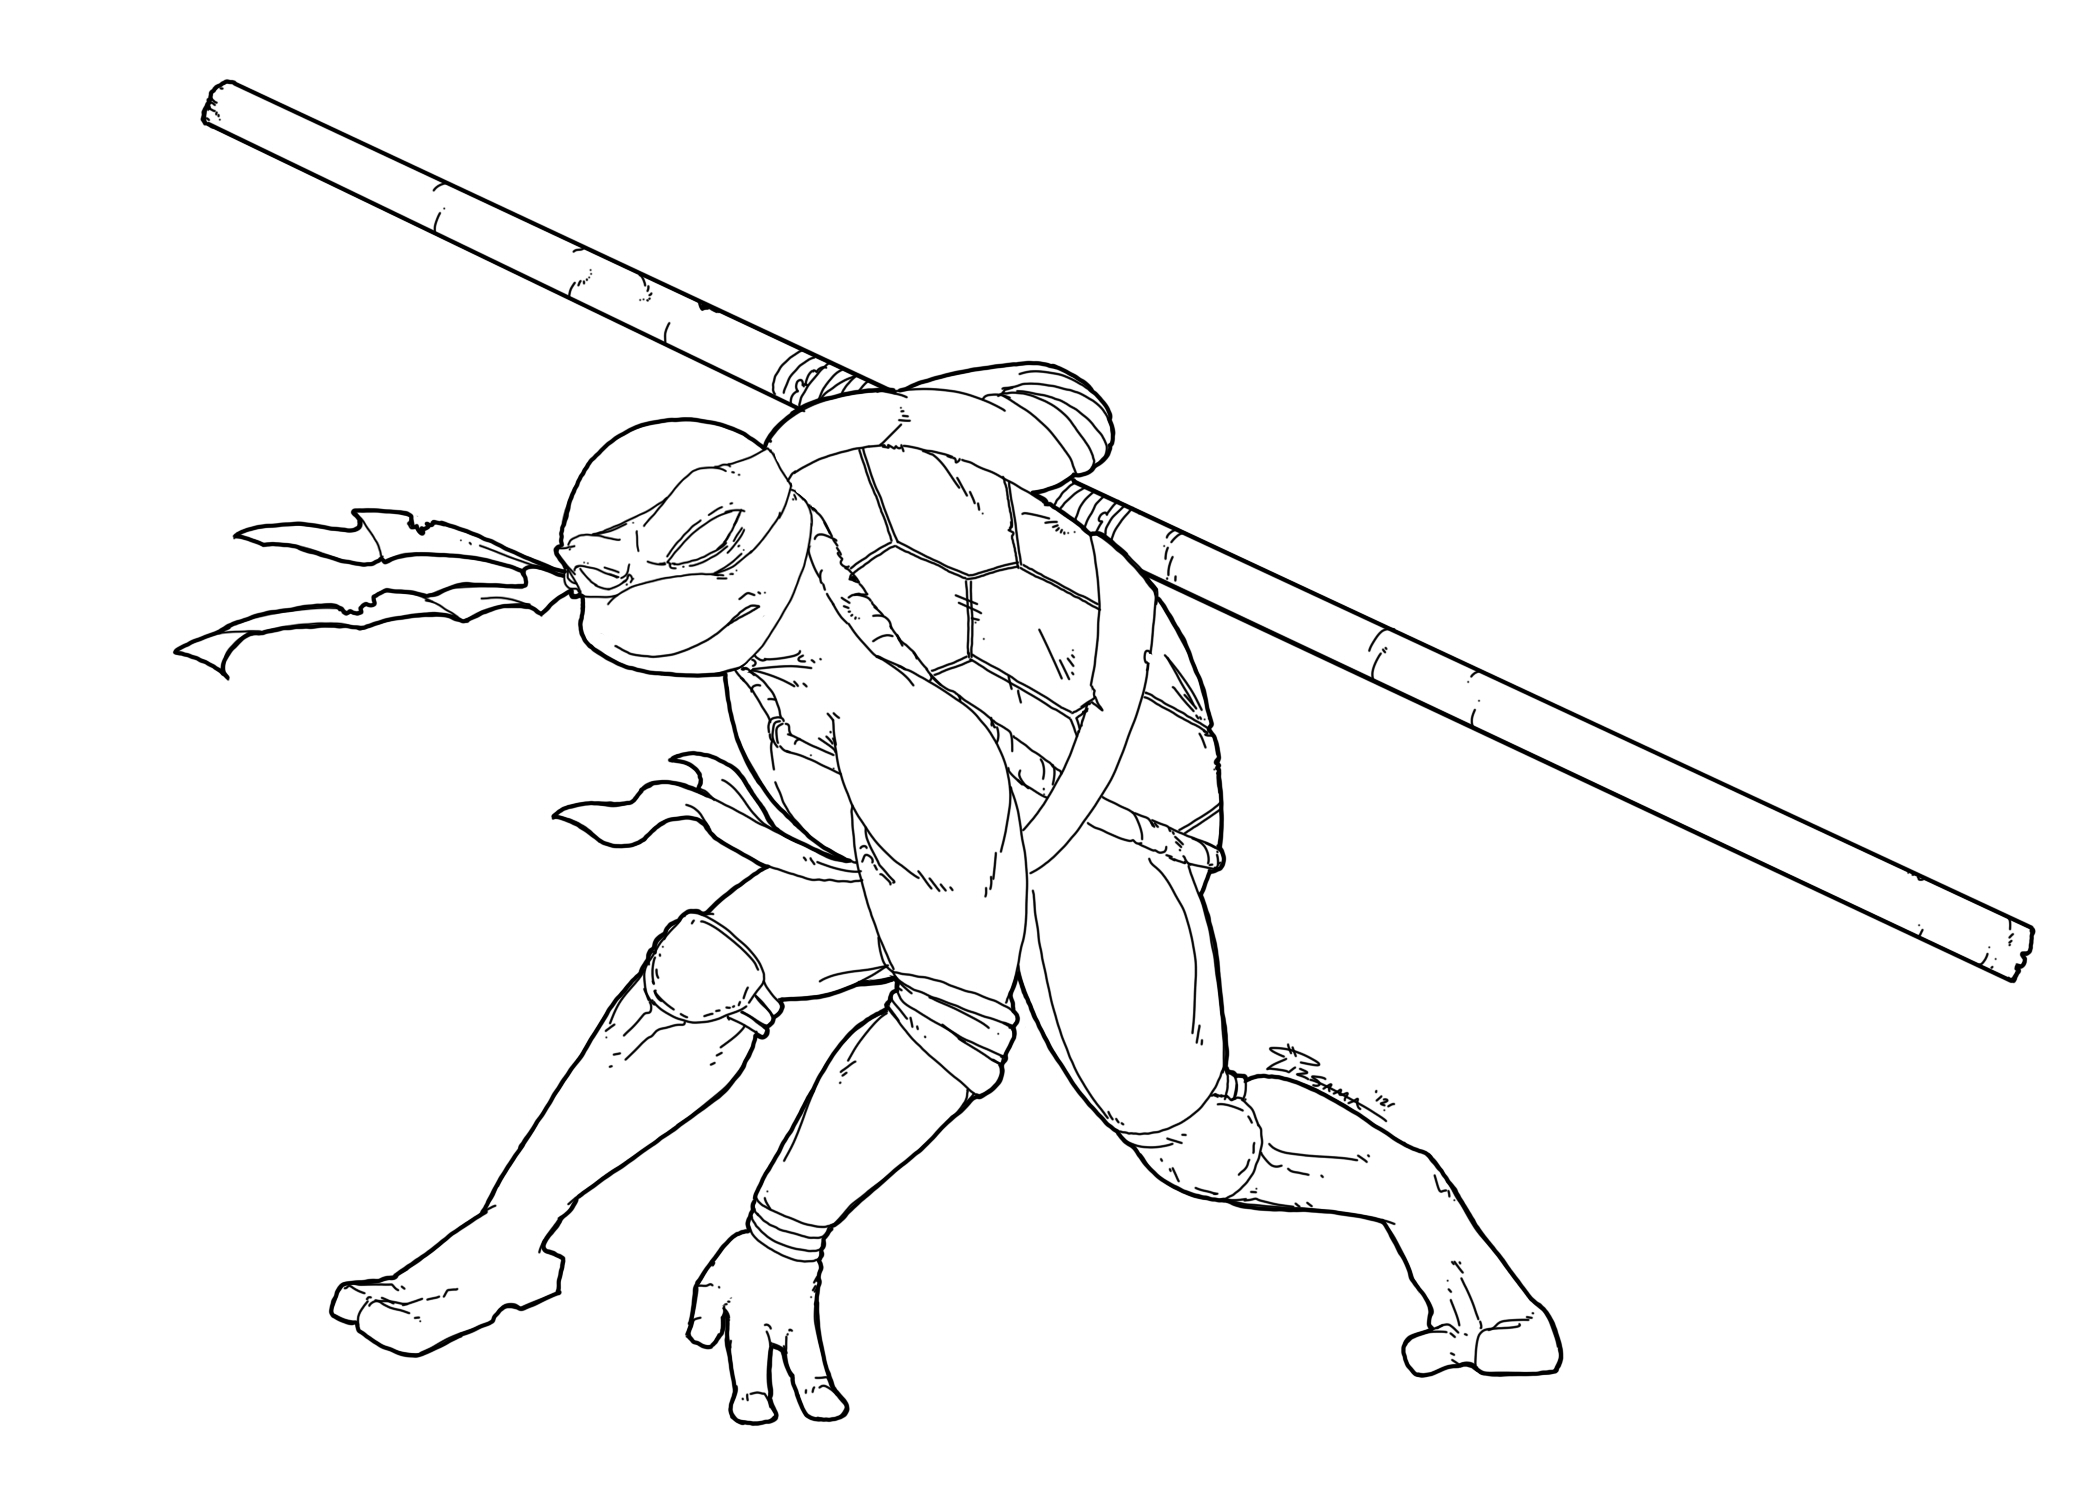 donatello ninja turtle coloring page not really daily sketch tmnt donatello by skypiratedash donatello page ninja coloring turtle